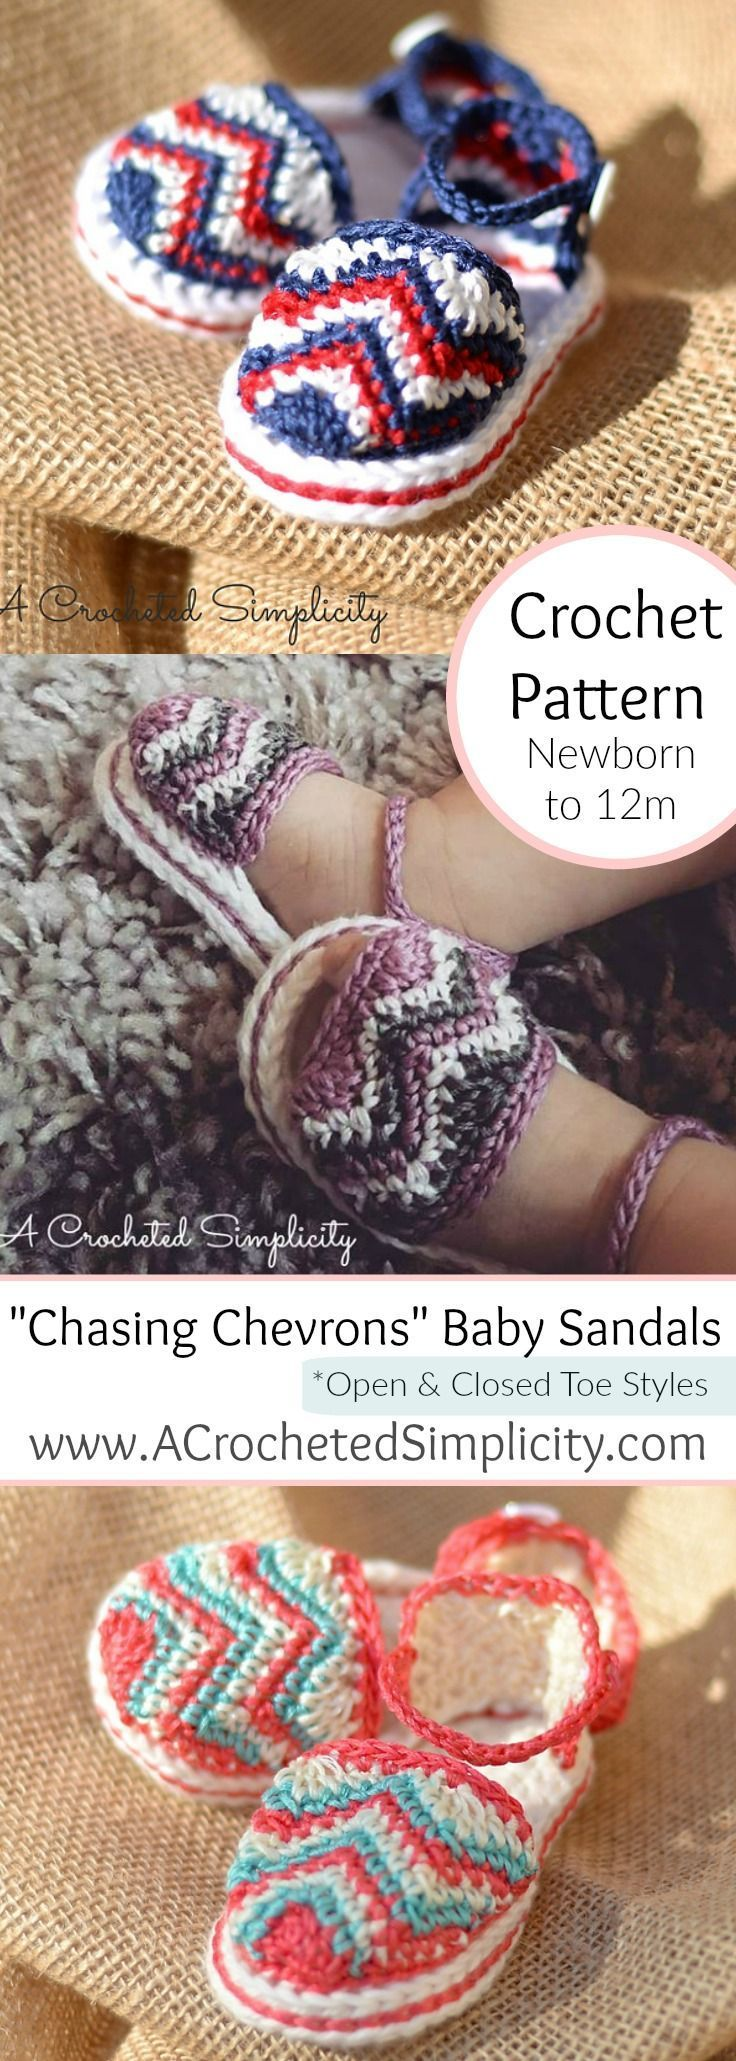 "Crochet Pattern - ""Chasing Chevrons"" Baby Sandals by A Crocheted Simplicity Sizes Newborn thru 12 months"